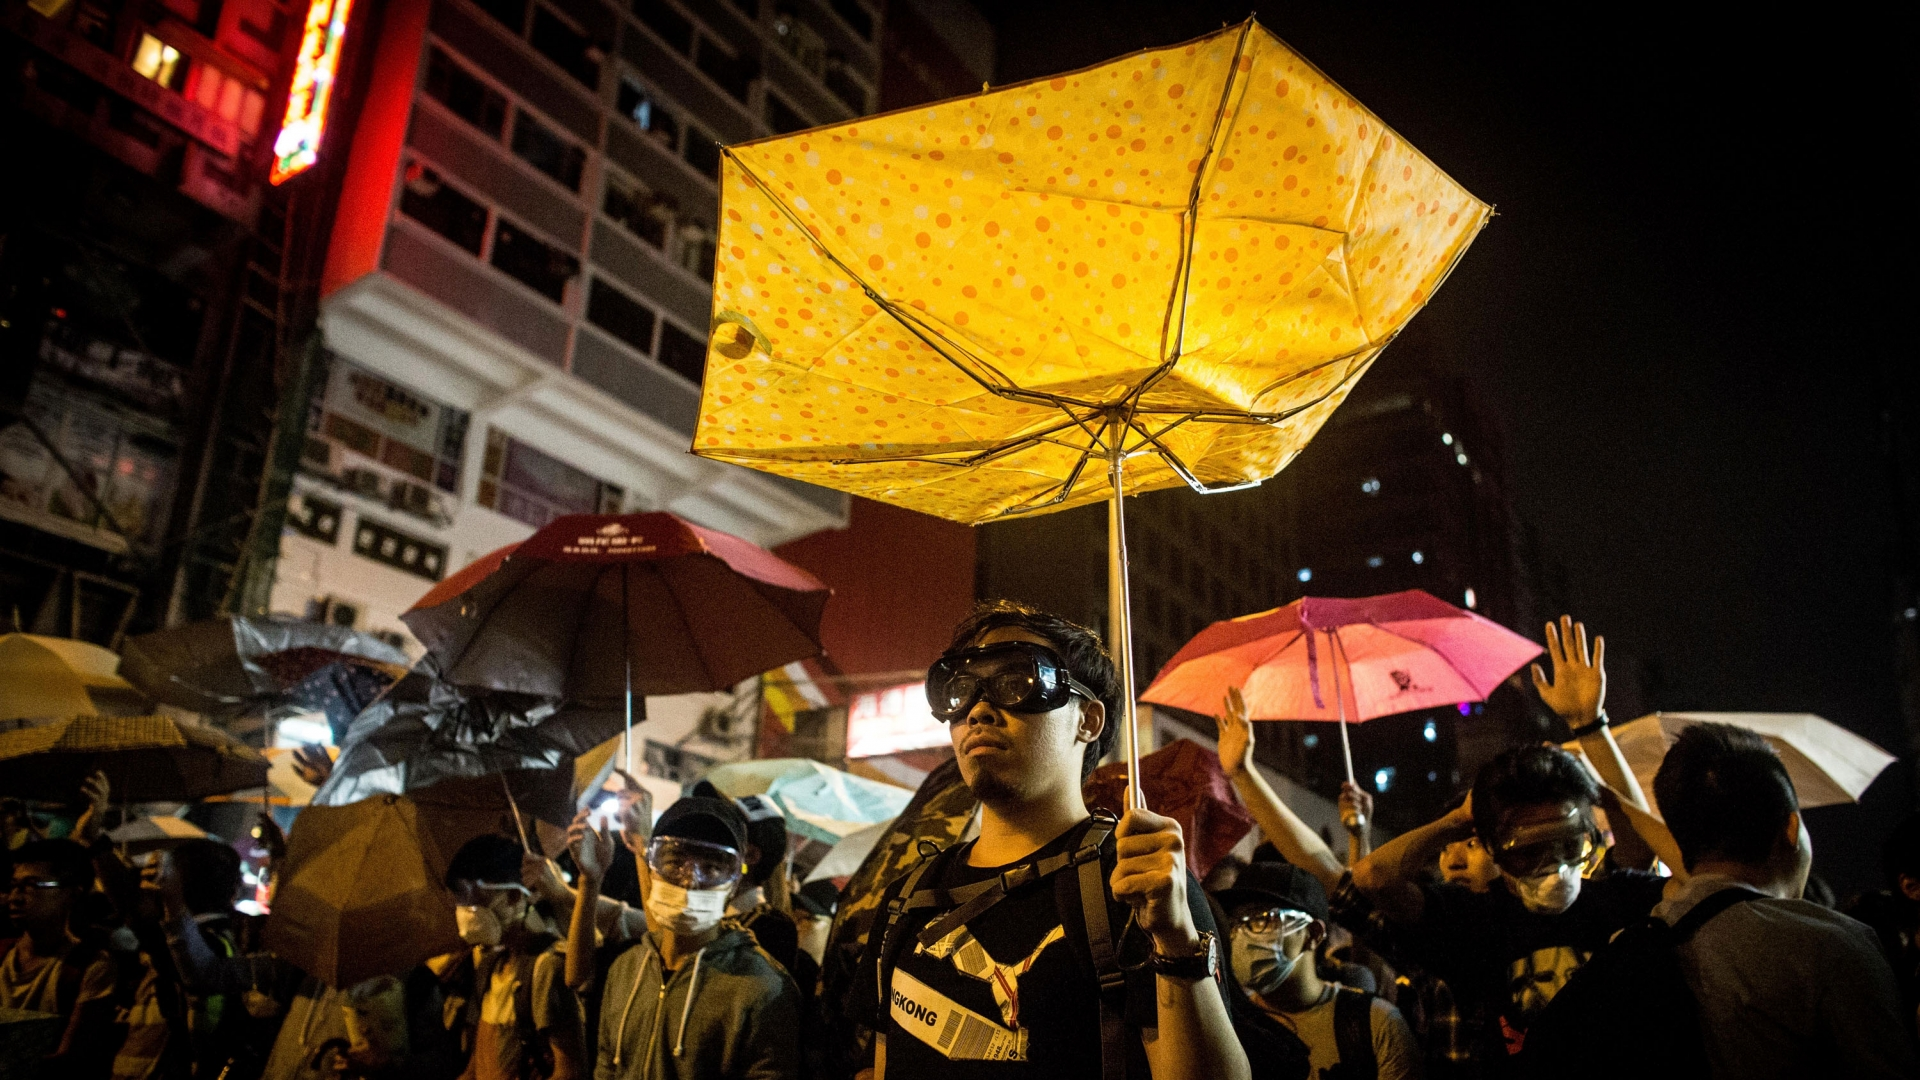 Pro-democracy protesters holding umbrellas in front of police during clashes on a street in Mong Kok on October 19, 2014 in Hong Kong. (Credit: Chris McGrath/Getty Images)